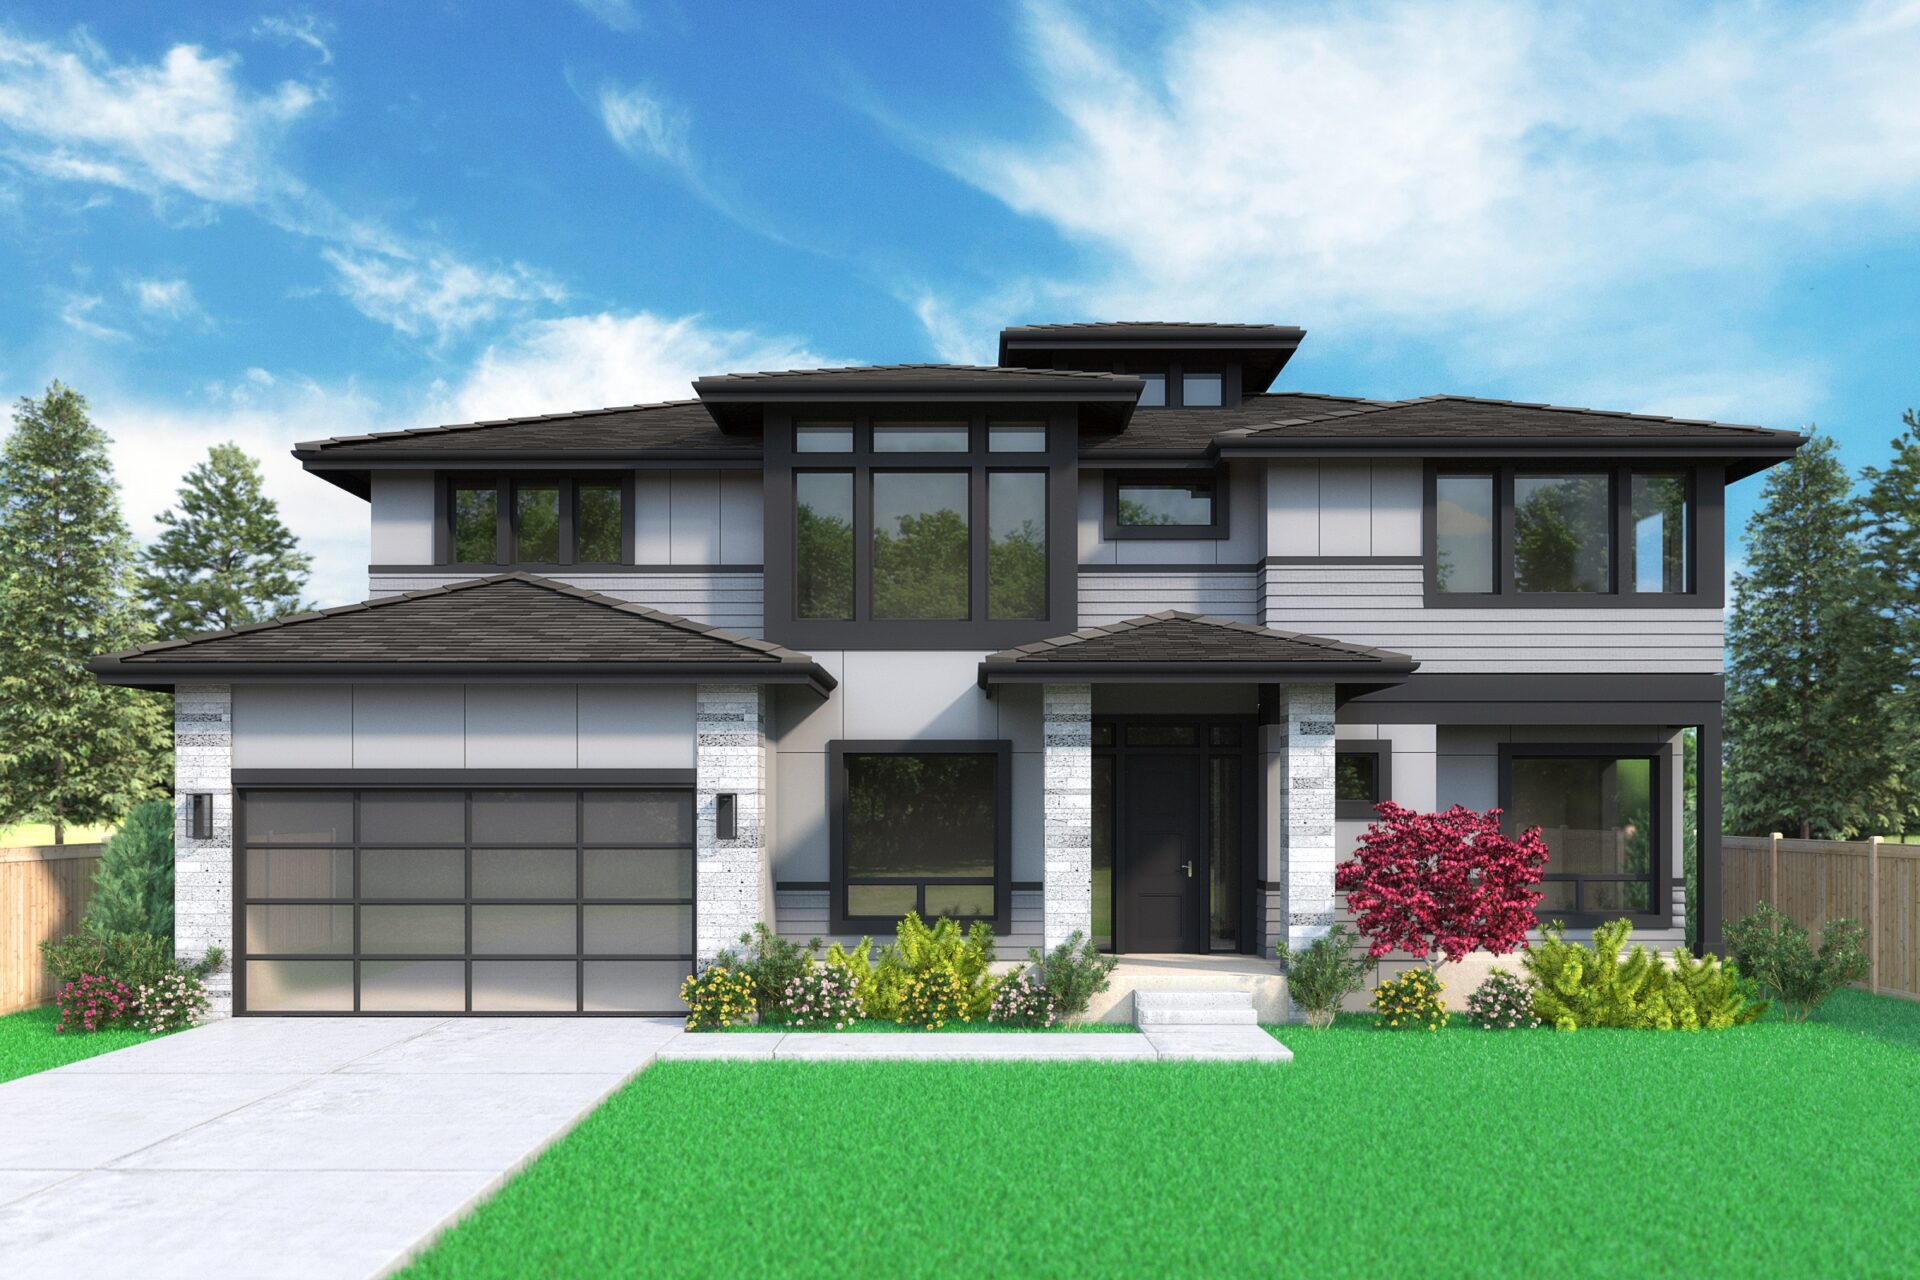 View our new luxury home construction on 626-164th Pl NE, in Bellevue, WA from MN Custom Homes